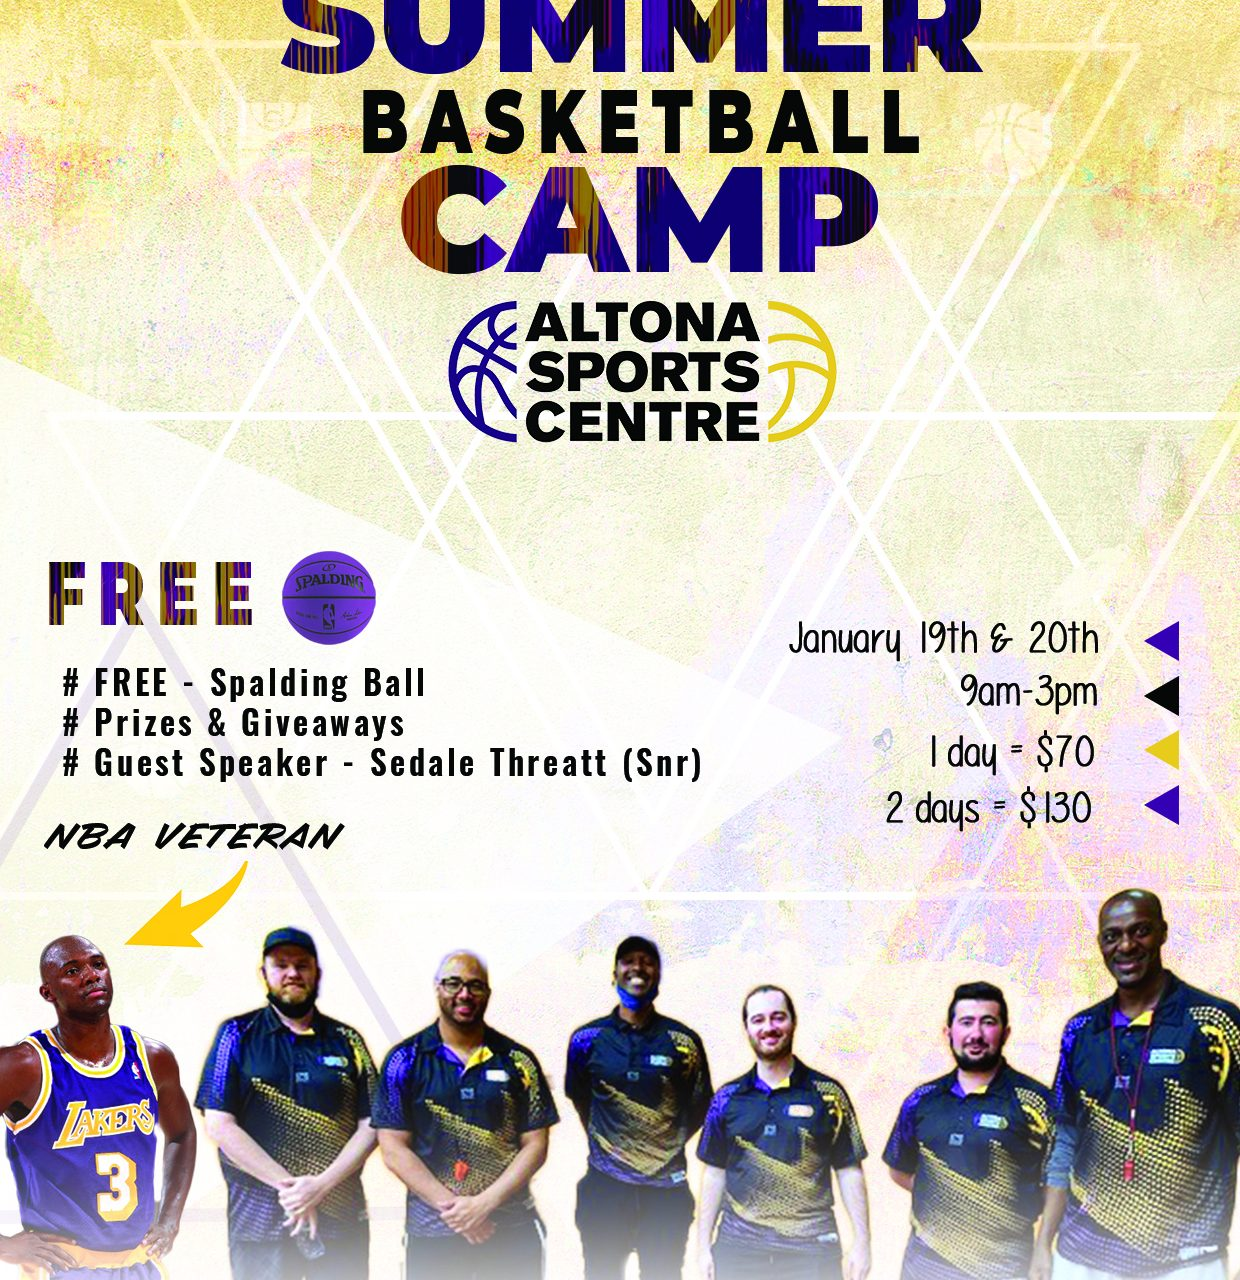 https://altonabasketball.com.au/wp-content/uploads/2020/12/SUMMER-HOLIDAY-CAMP-1240x1280.jpg